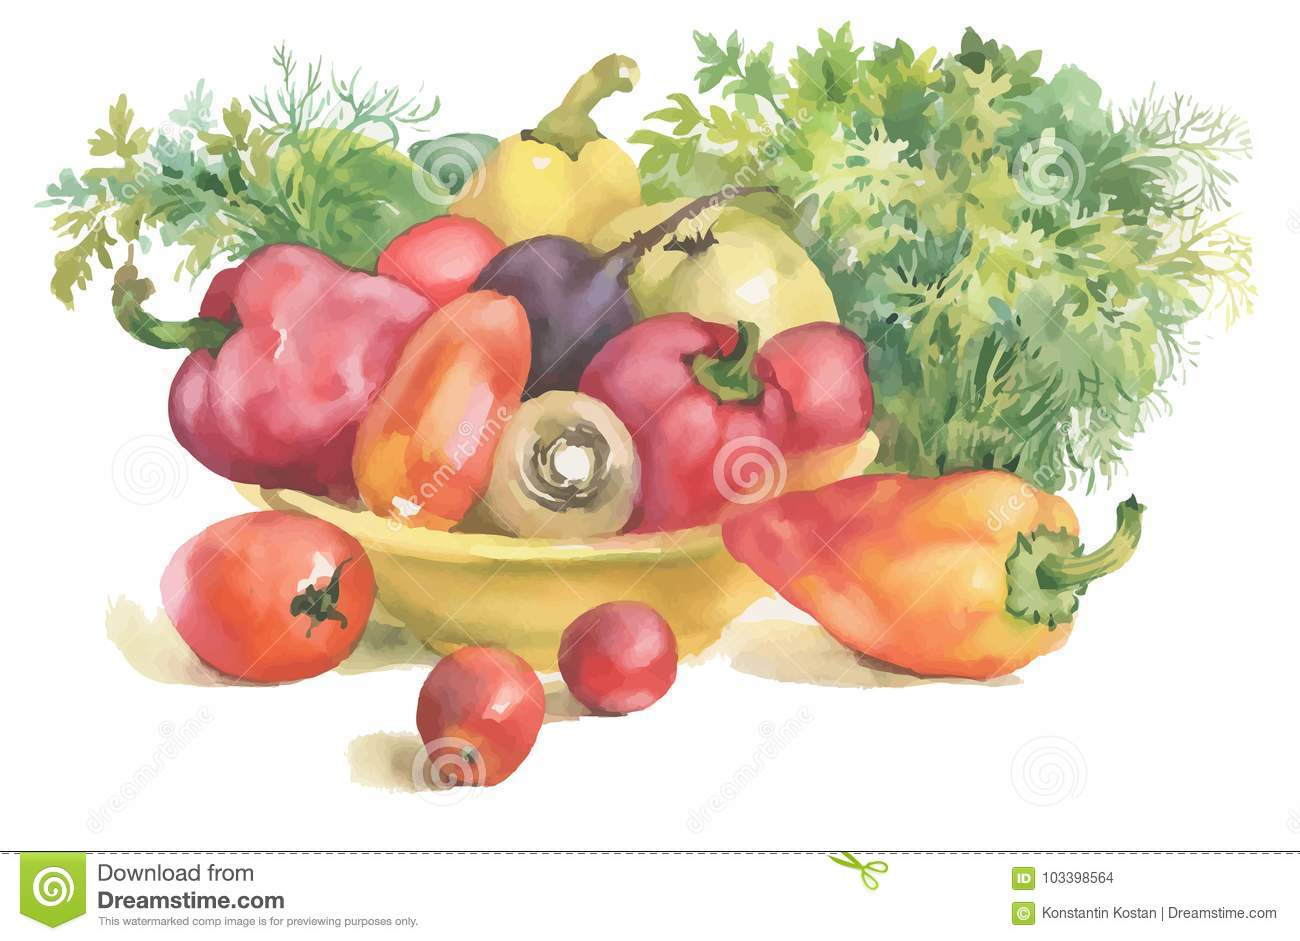 Watercolor vegetables in bowl and herbs, isolated on white.